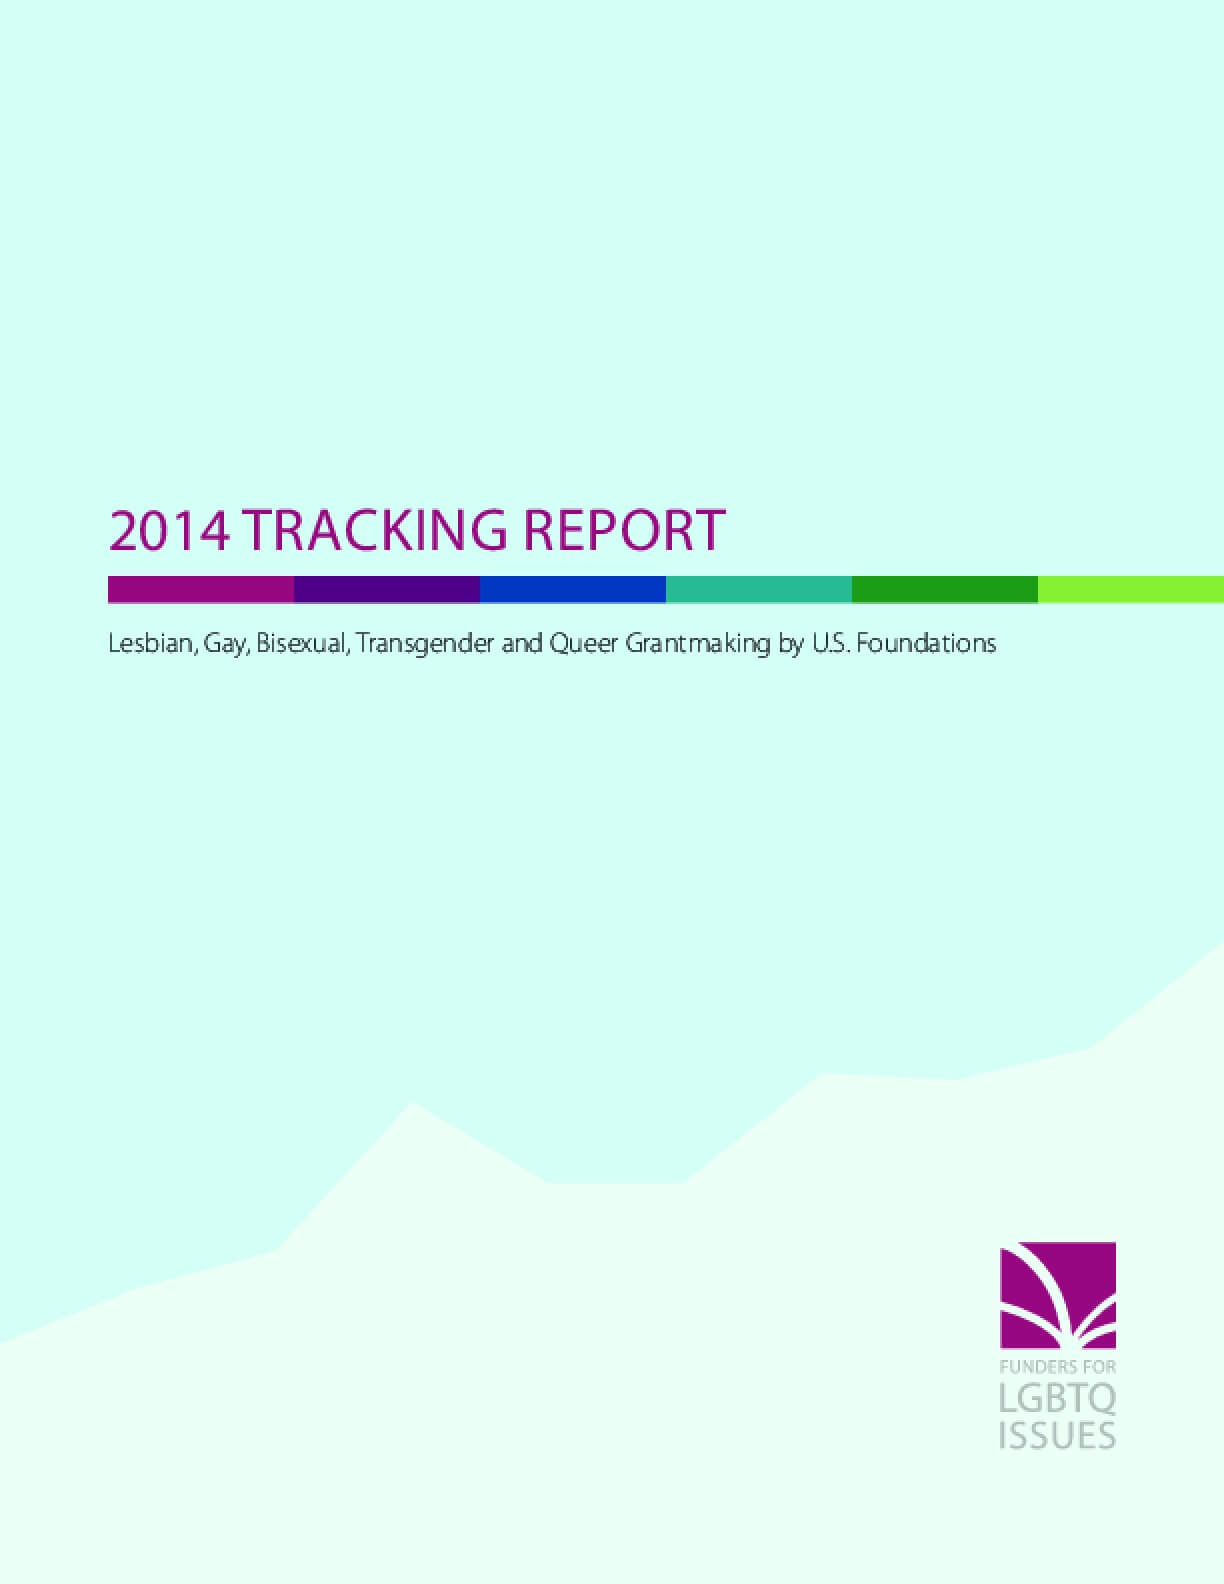 2014 Tracking Report: Lesbian, Gay, Bisexual, Transgender, and Queer Grantmaking by U.S. Foundations